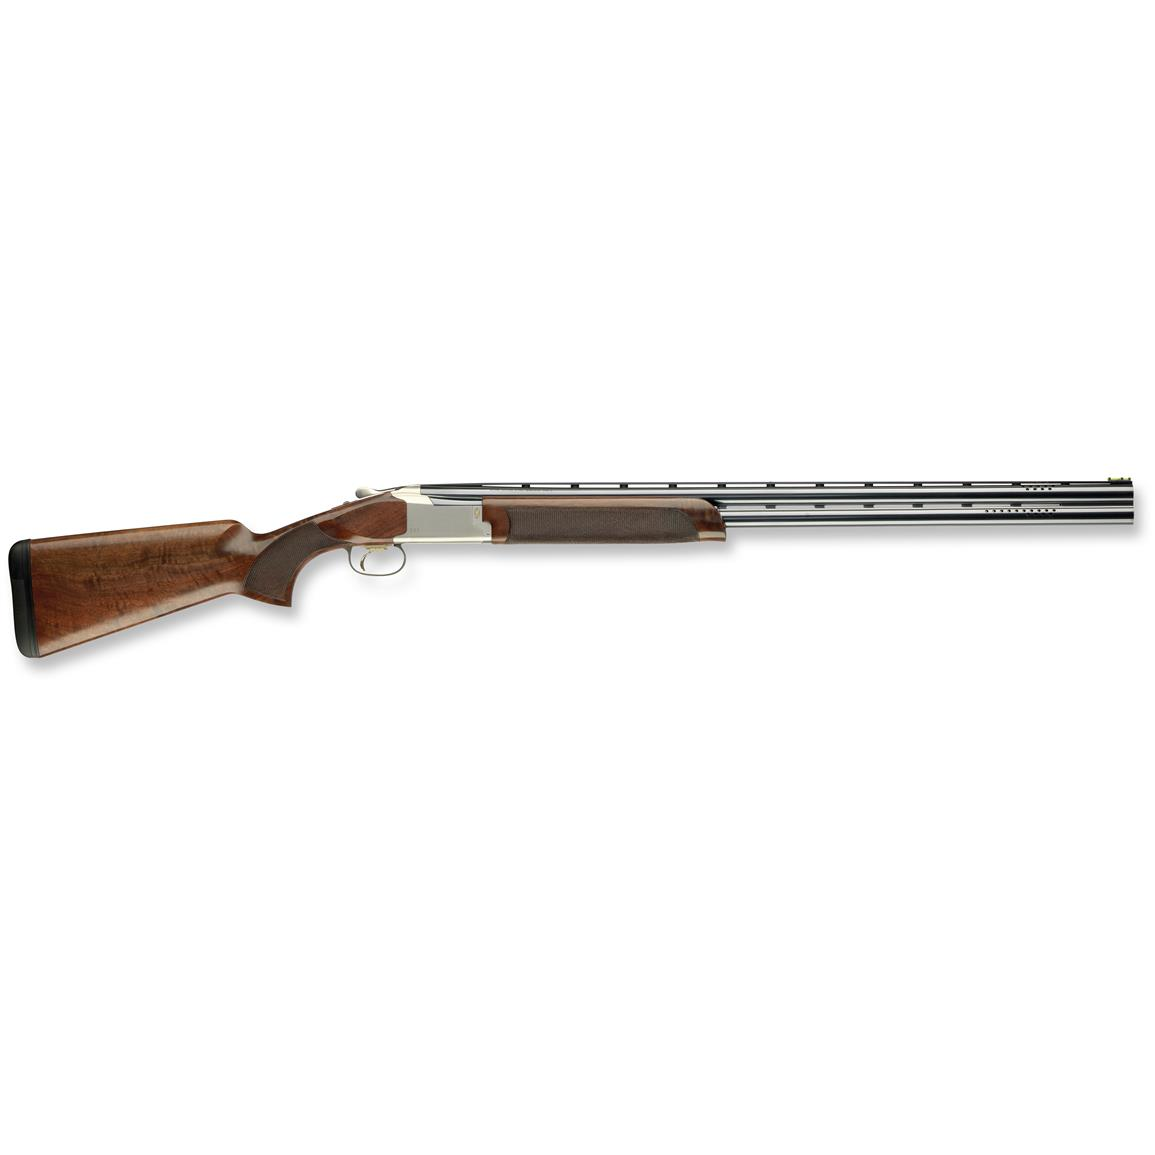 Browning Citori 725 Sporting, Over / Under, 12 Gauge, 0135313009, 023614073192, 32 inch Barrel